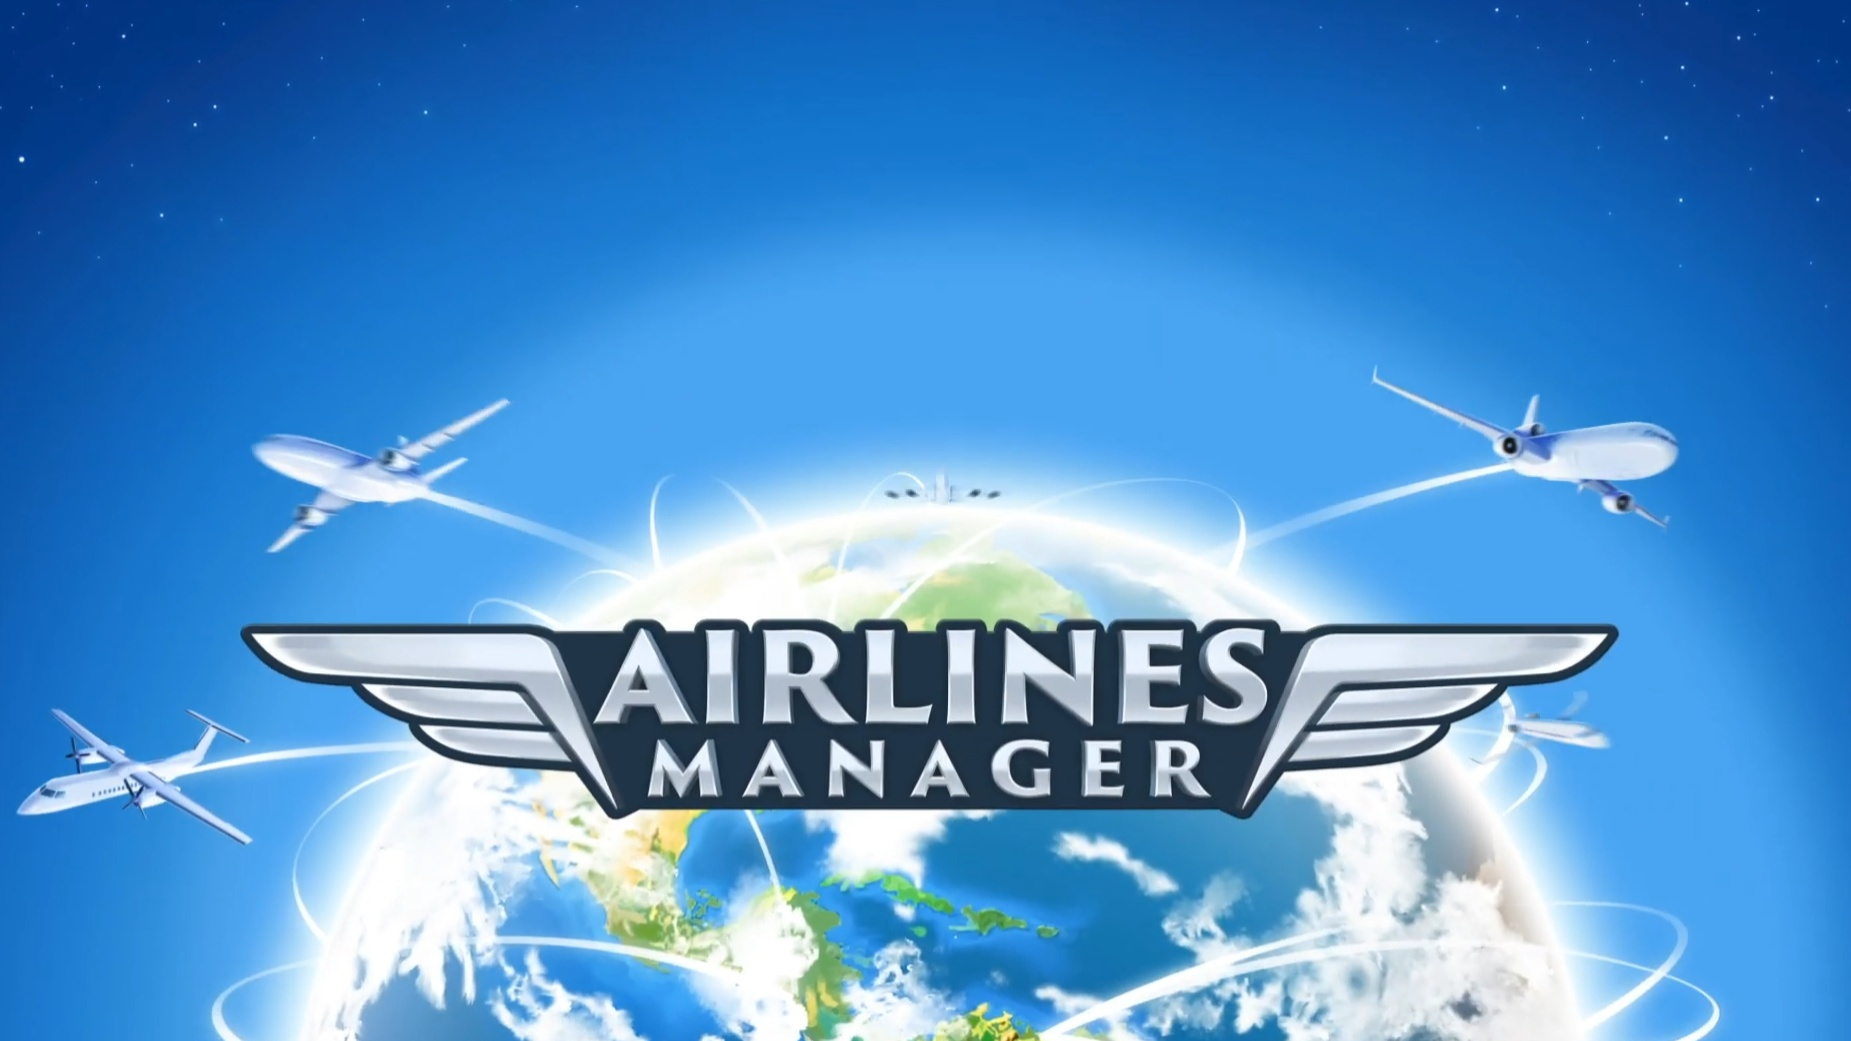 Airlines Manager - Tycoon 2019 MOD APK